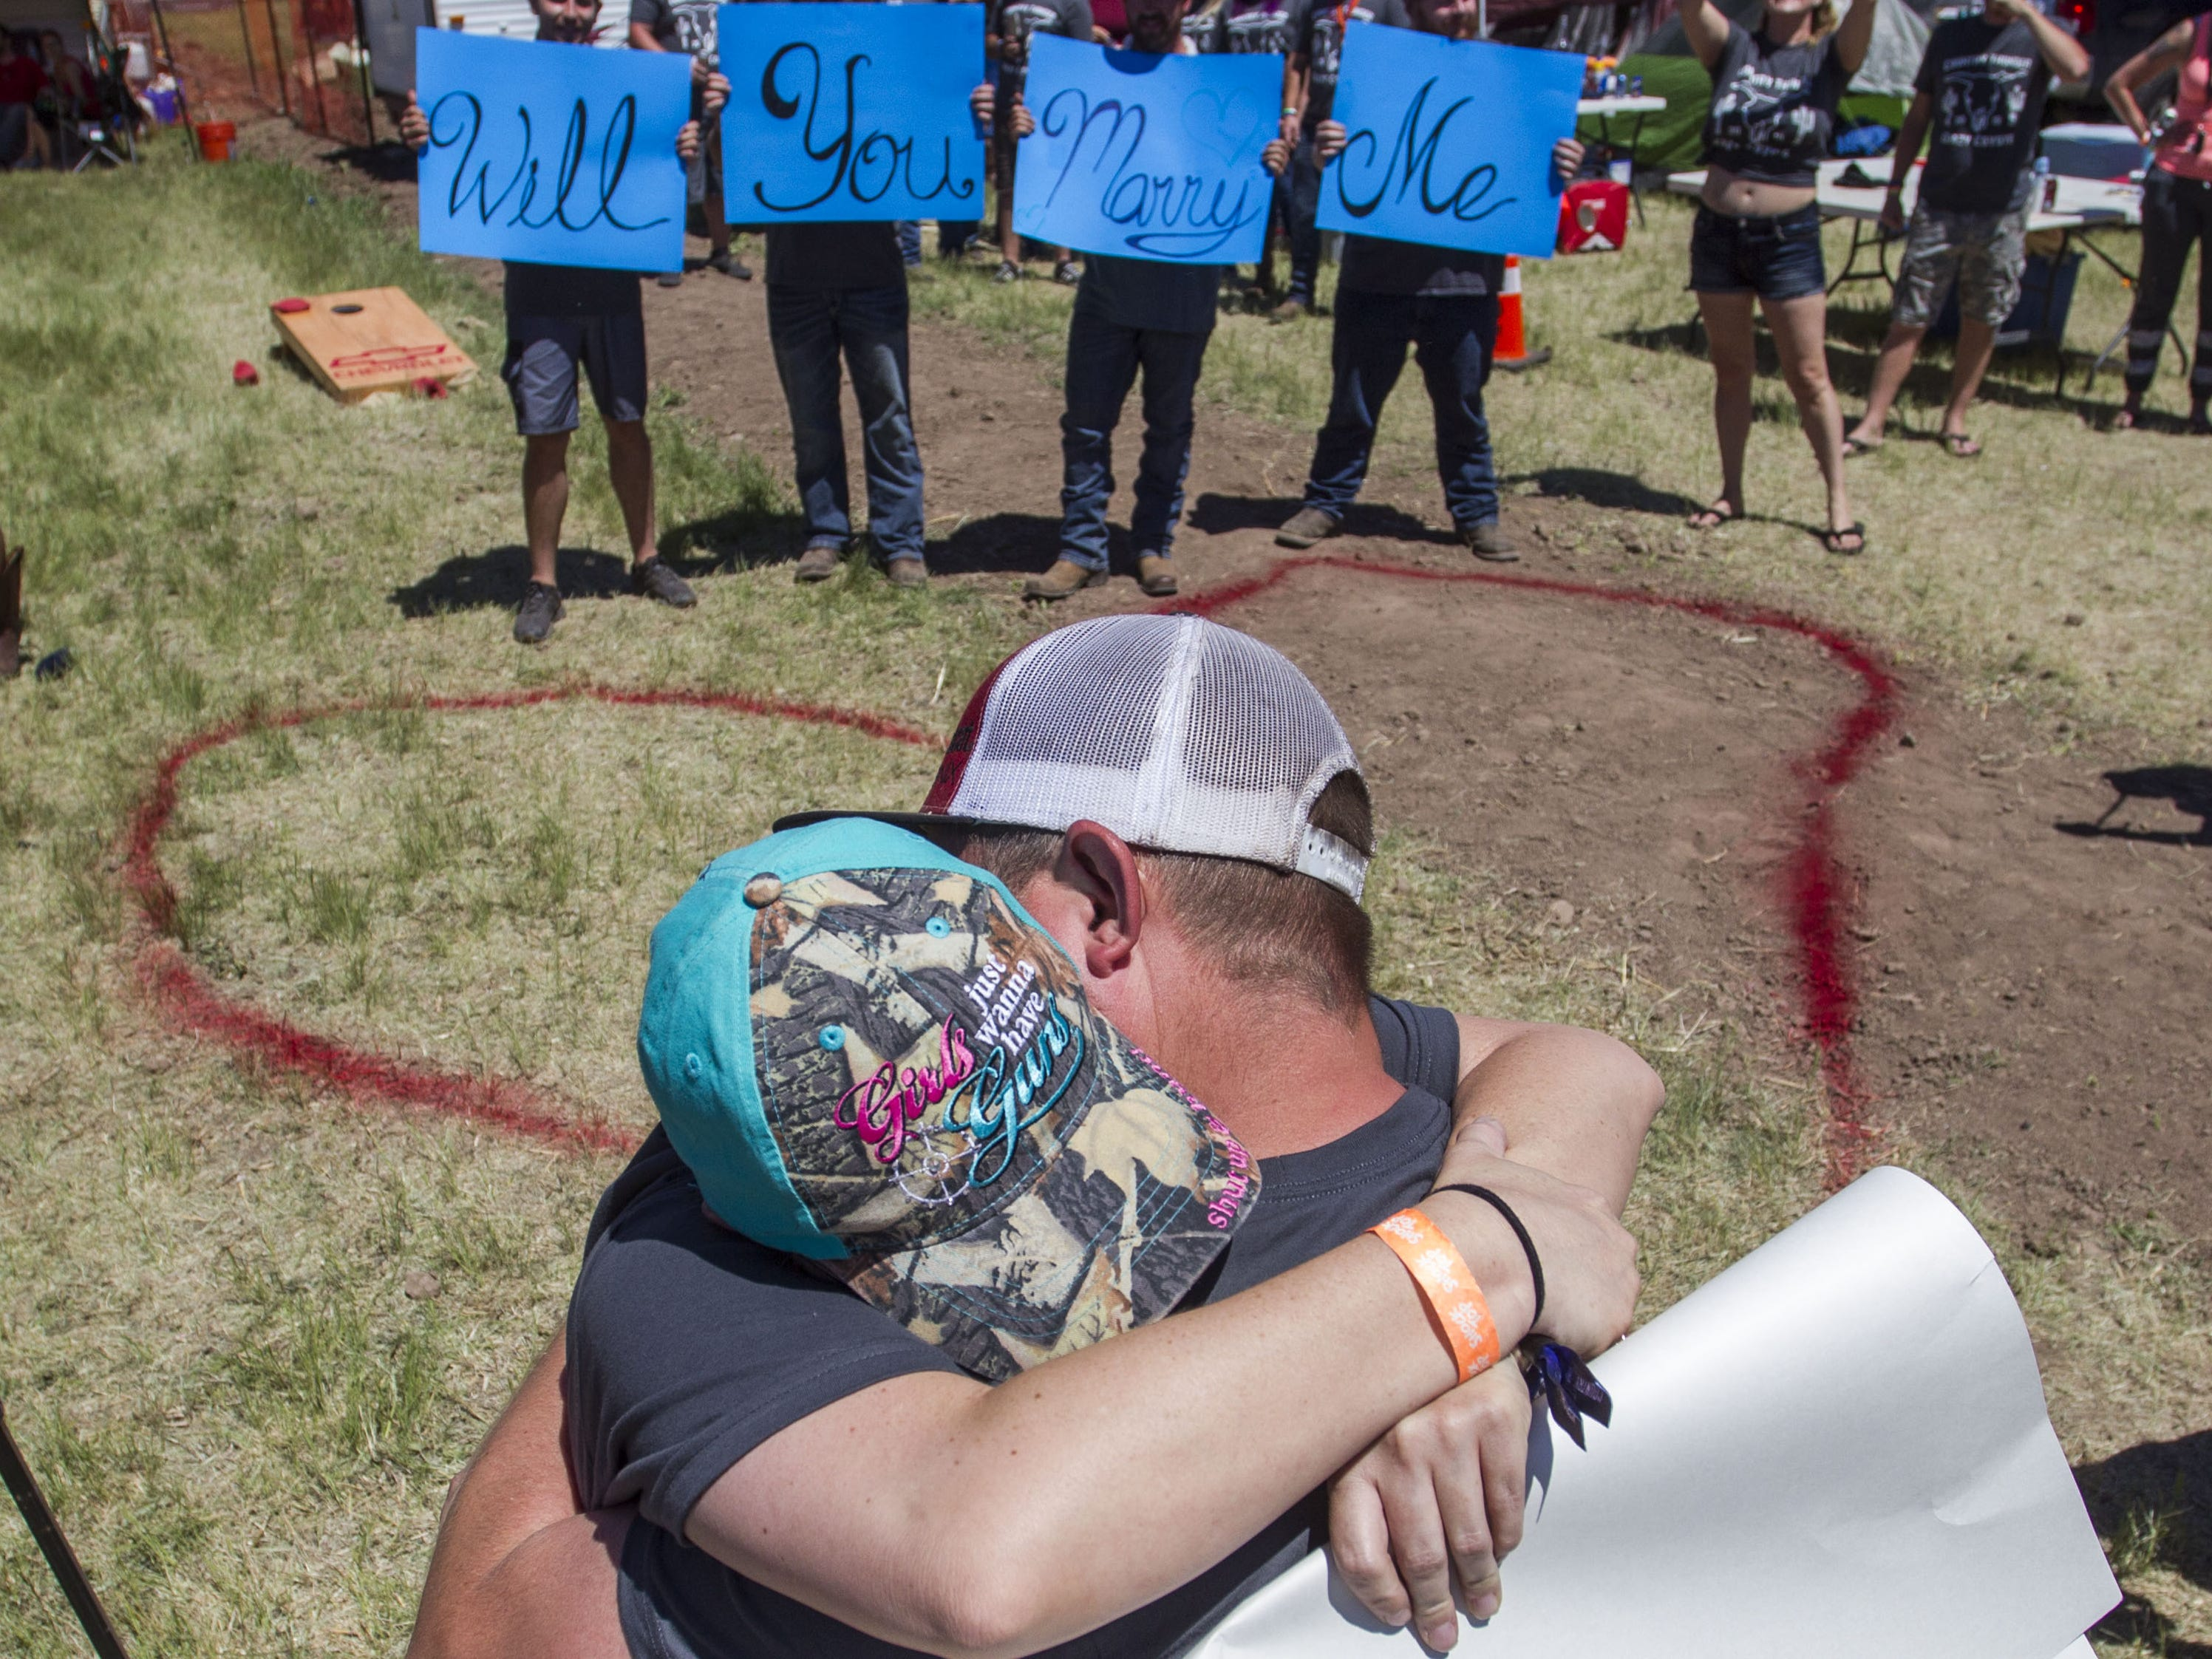 Tahnee Billingsly and Justin Adams hug after she accepted his marriage proposal during Country Thunder Arizona Saturday, April 13, 2019, in Florence, Ariz.